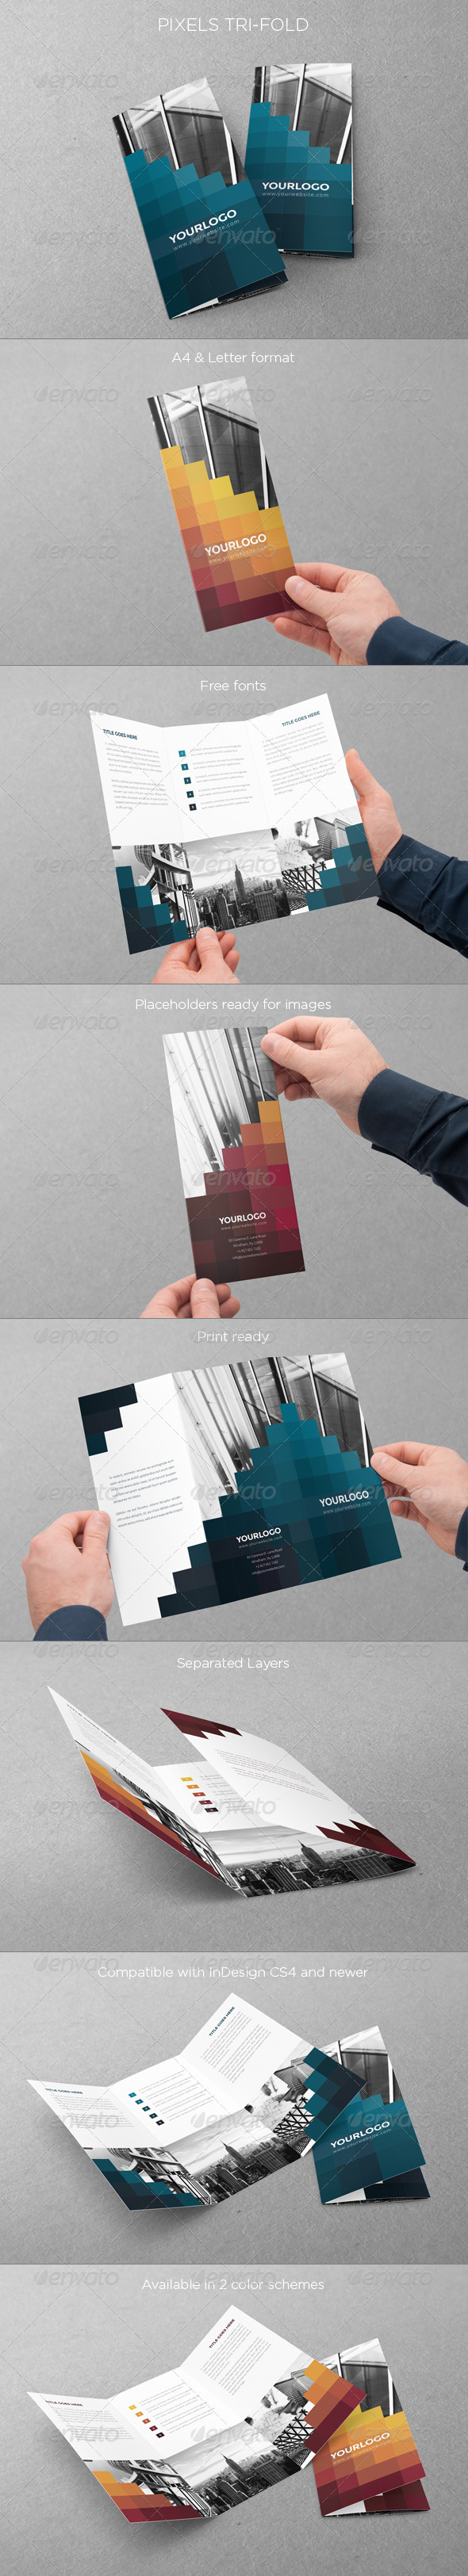 GraphicRiver Pixels Trifold 6602713